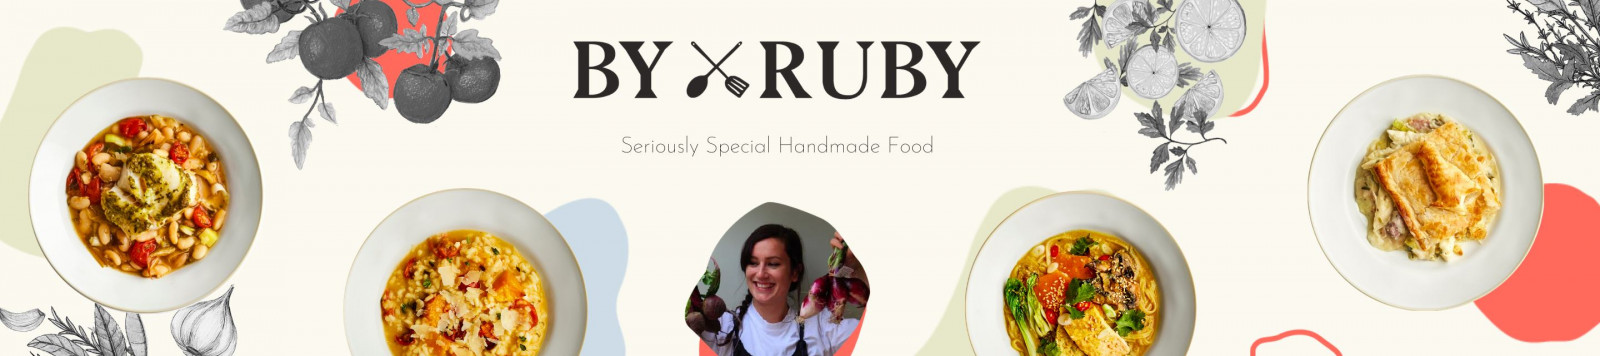 ByRuby products lincolnshire